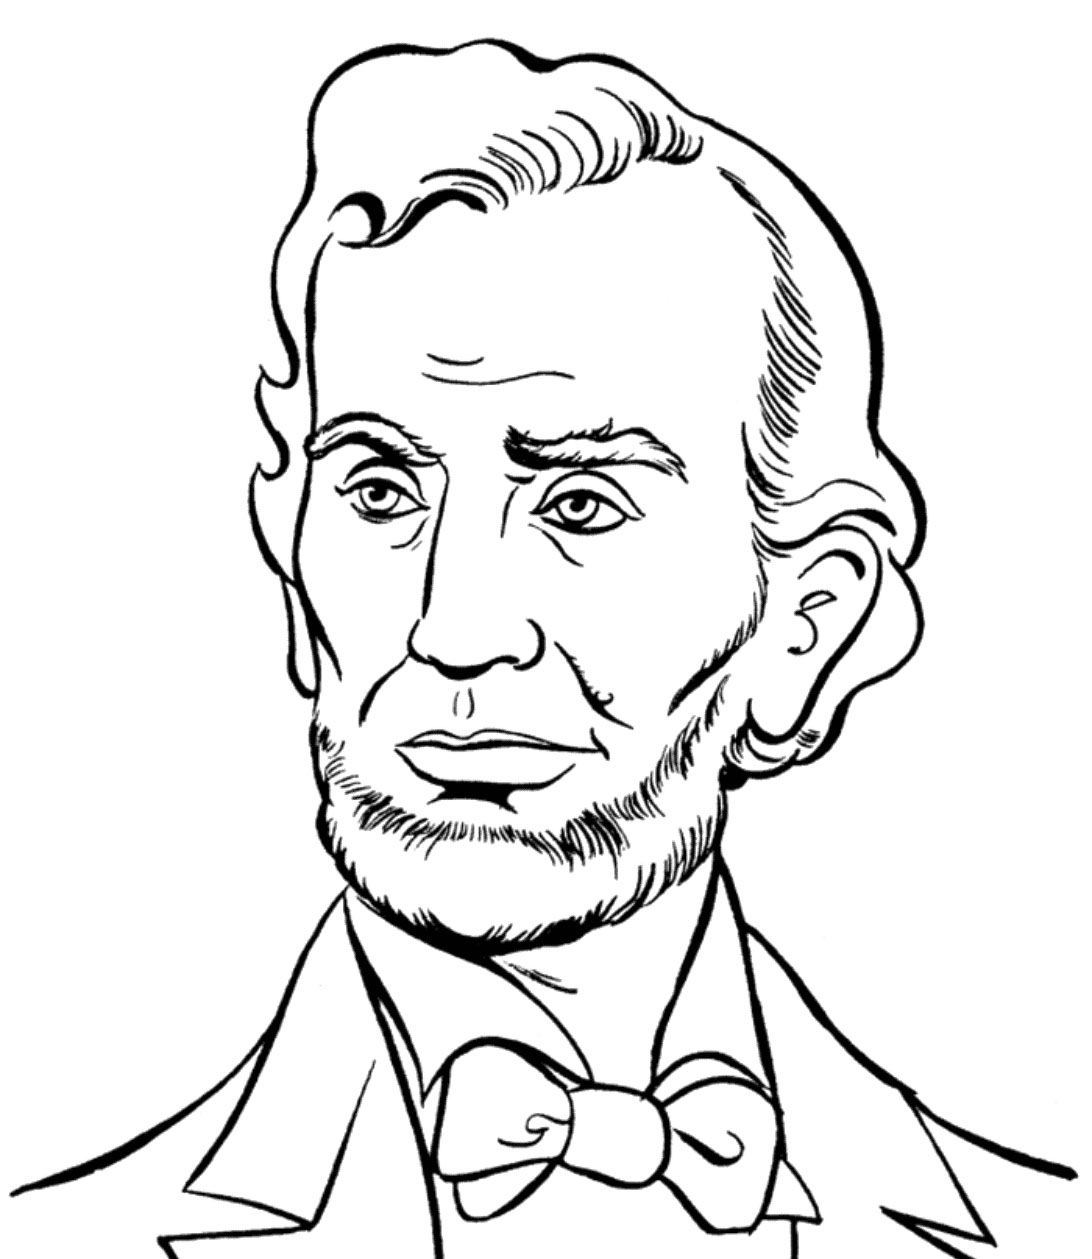 abraham lincoln presidents day coloring pages - Coloring Page Abraham Lincoln